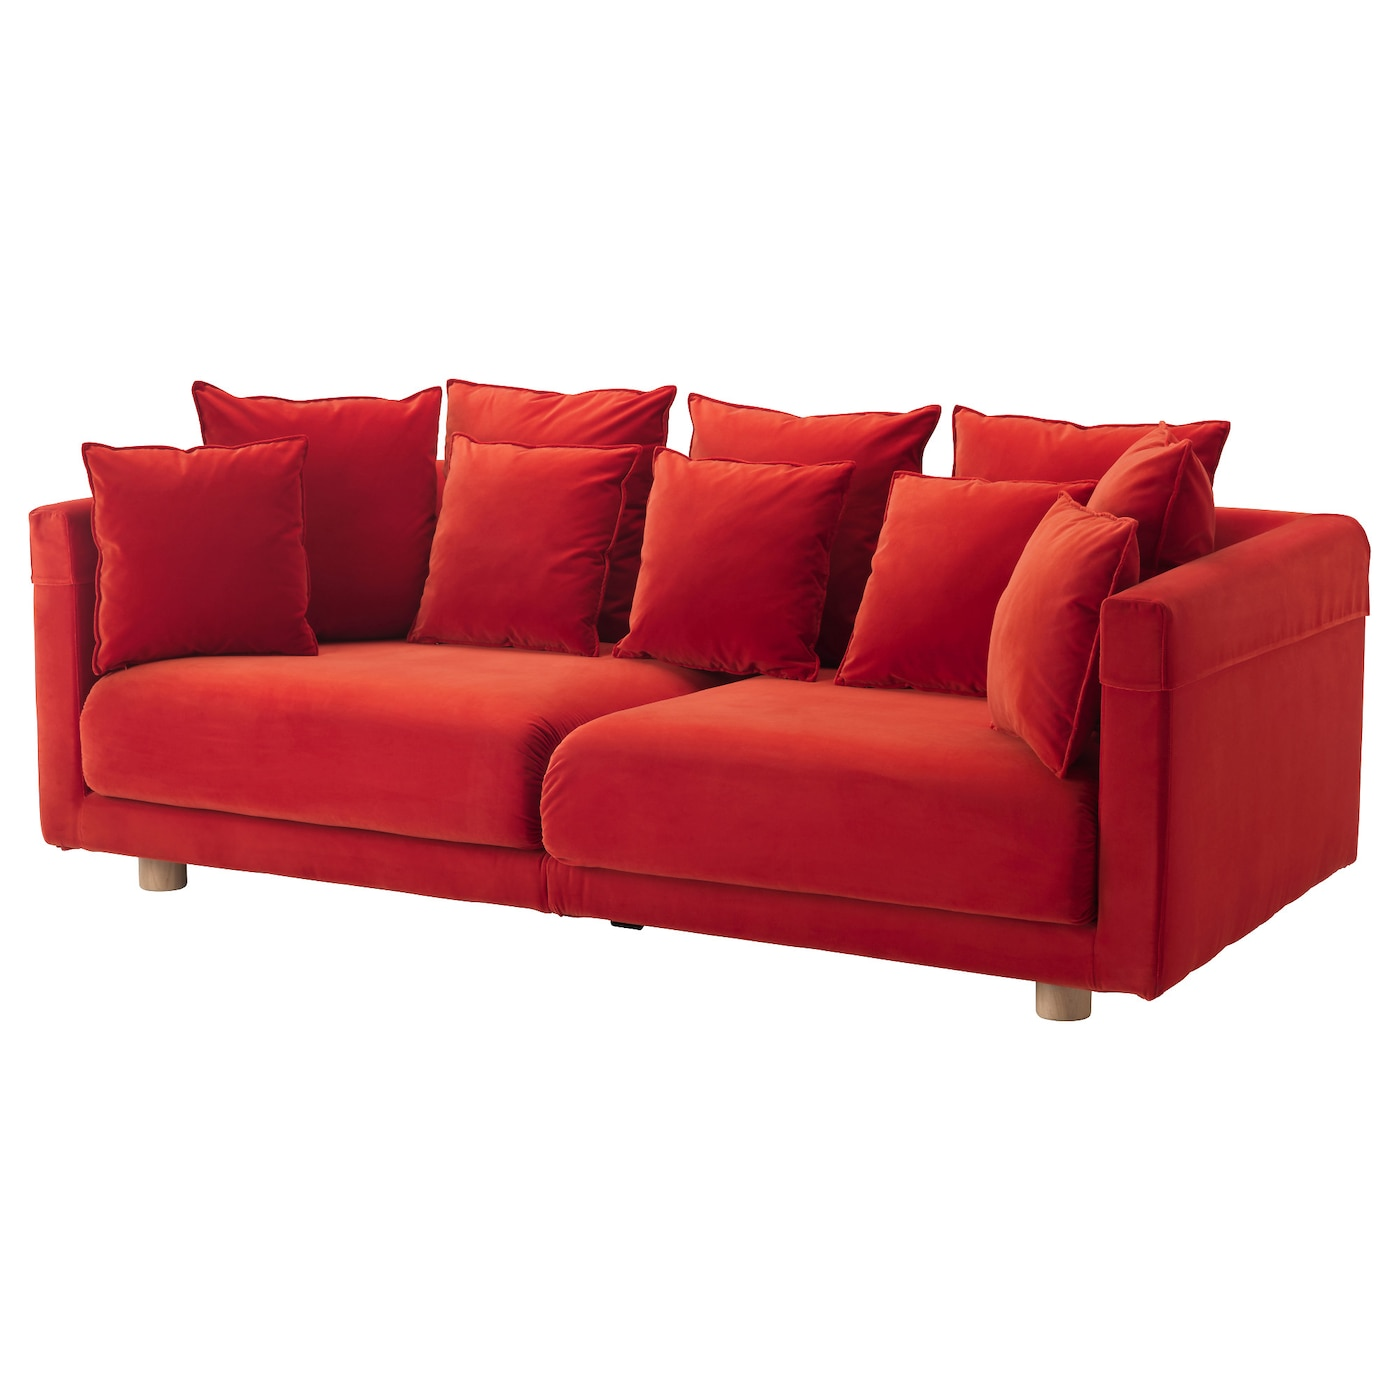 STOCKHOLM 2017 Pouffe Sandbacka orange 50x50 cm IKEA : stockholm 2017 three seat sofa sandbacka orange0447585pe597394s5 from www.ikea.com size 2000 x 2000 jpeg 284kB